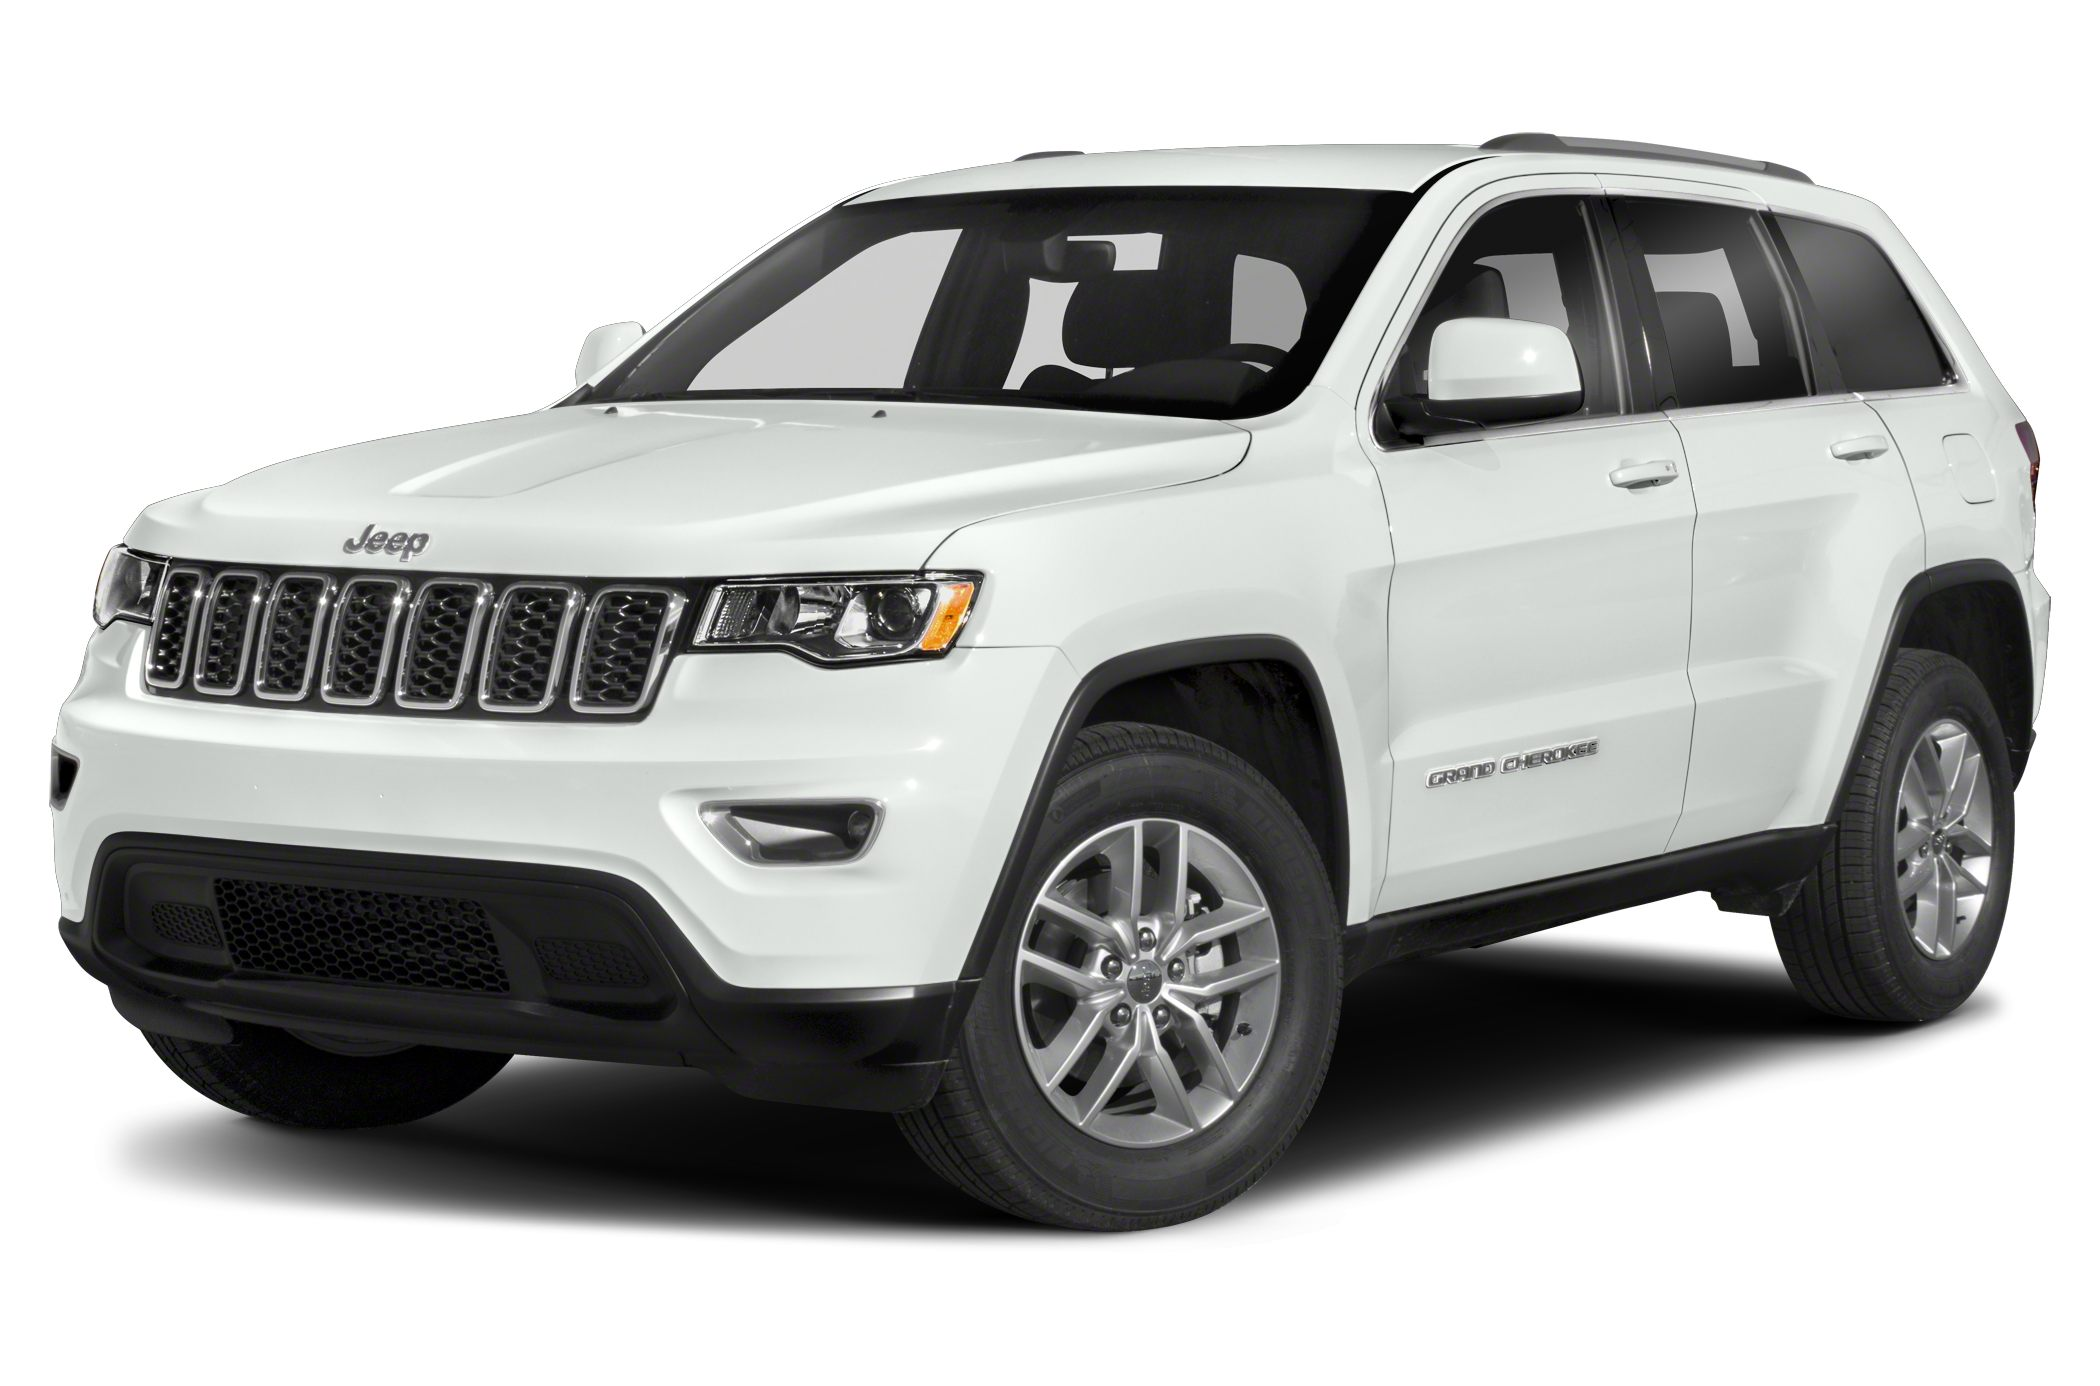 Laredo 4dr 4x4 2017 Jeep Grand Cherokee Photos